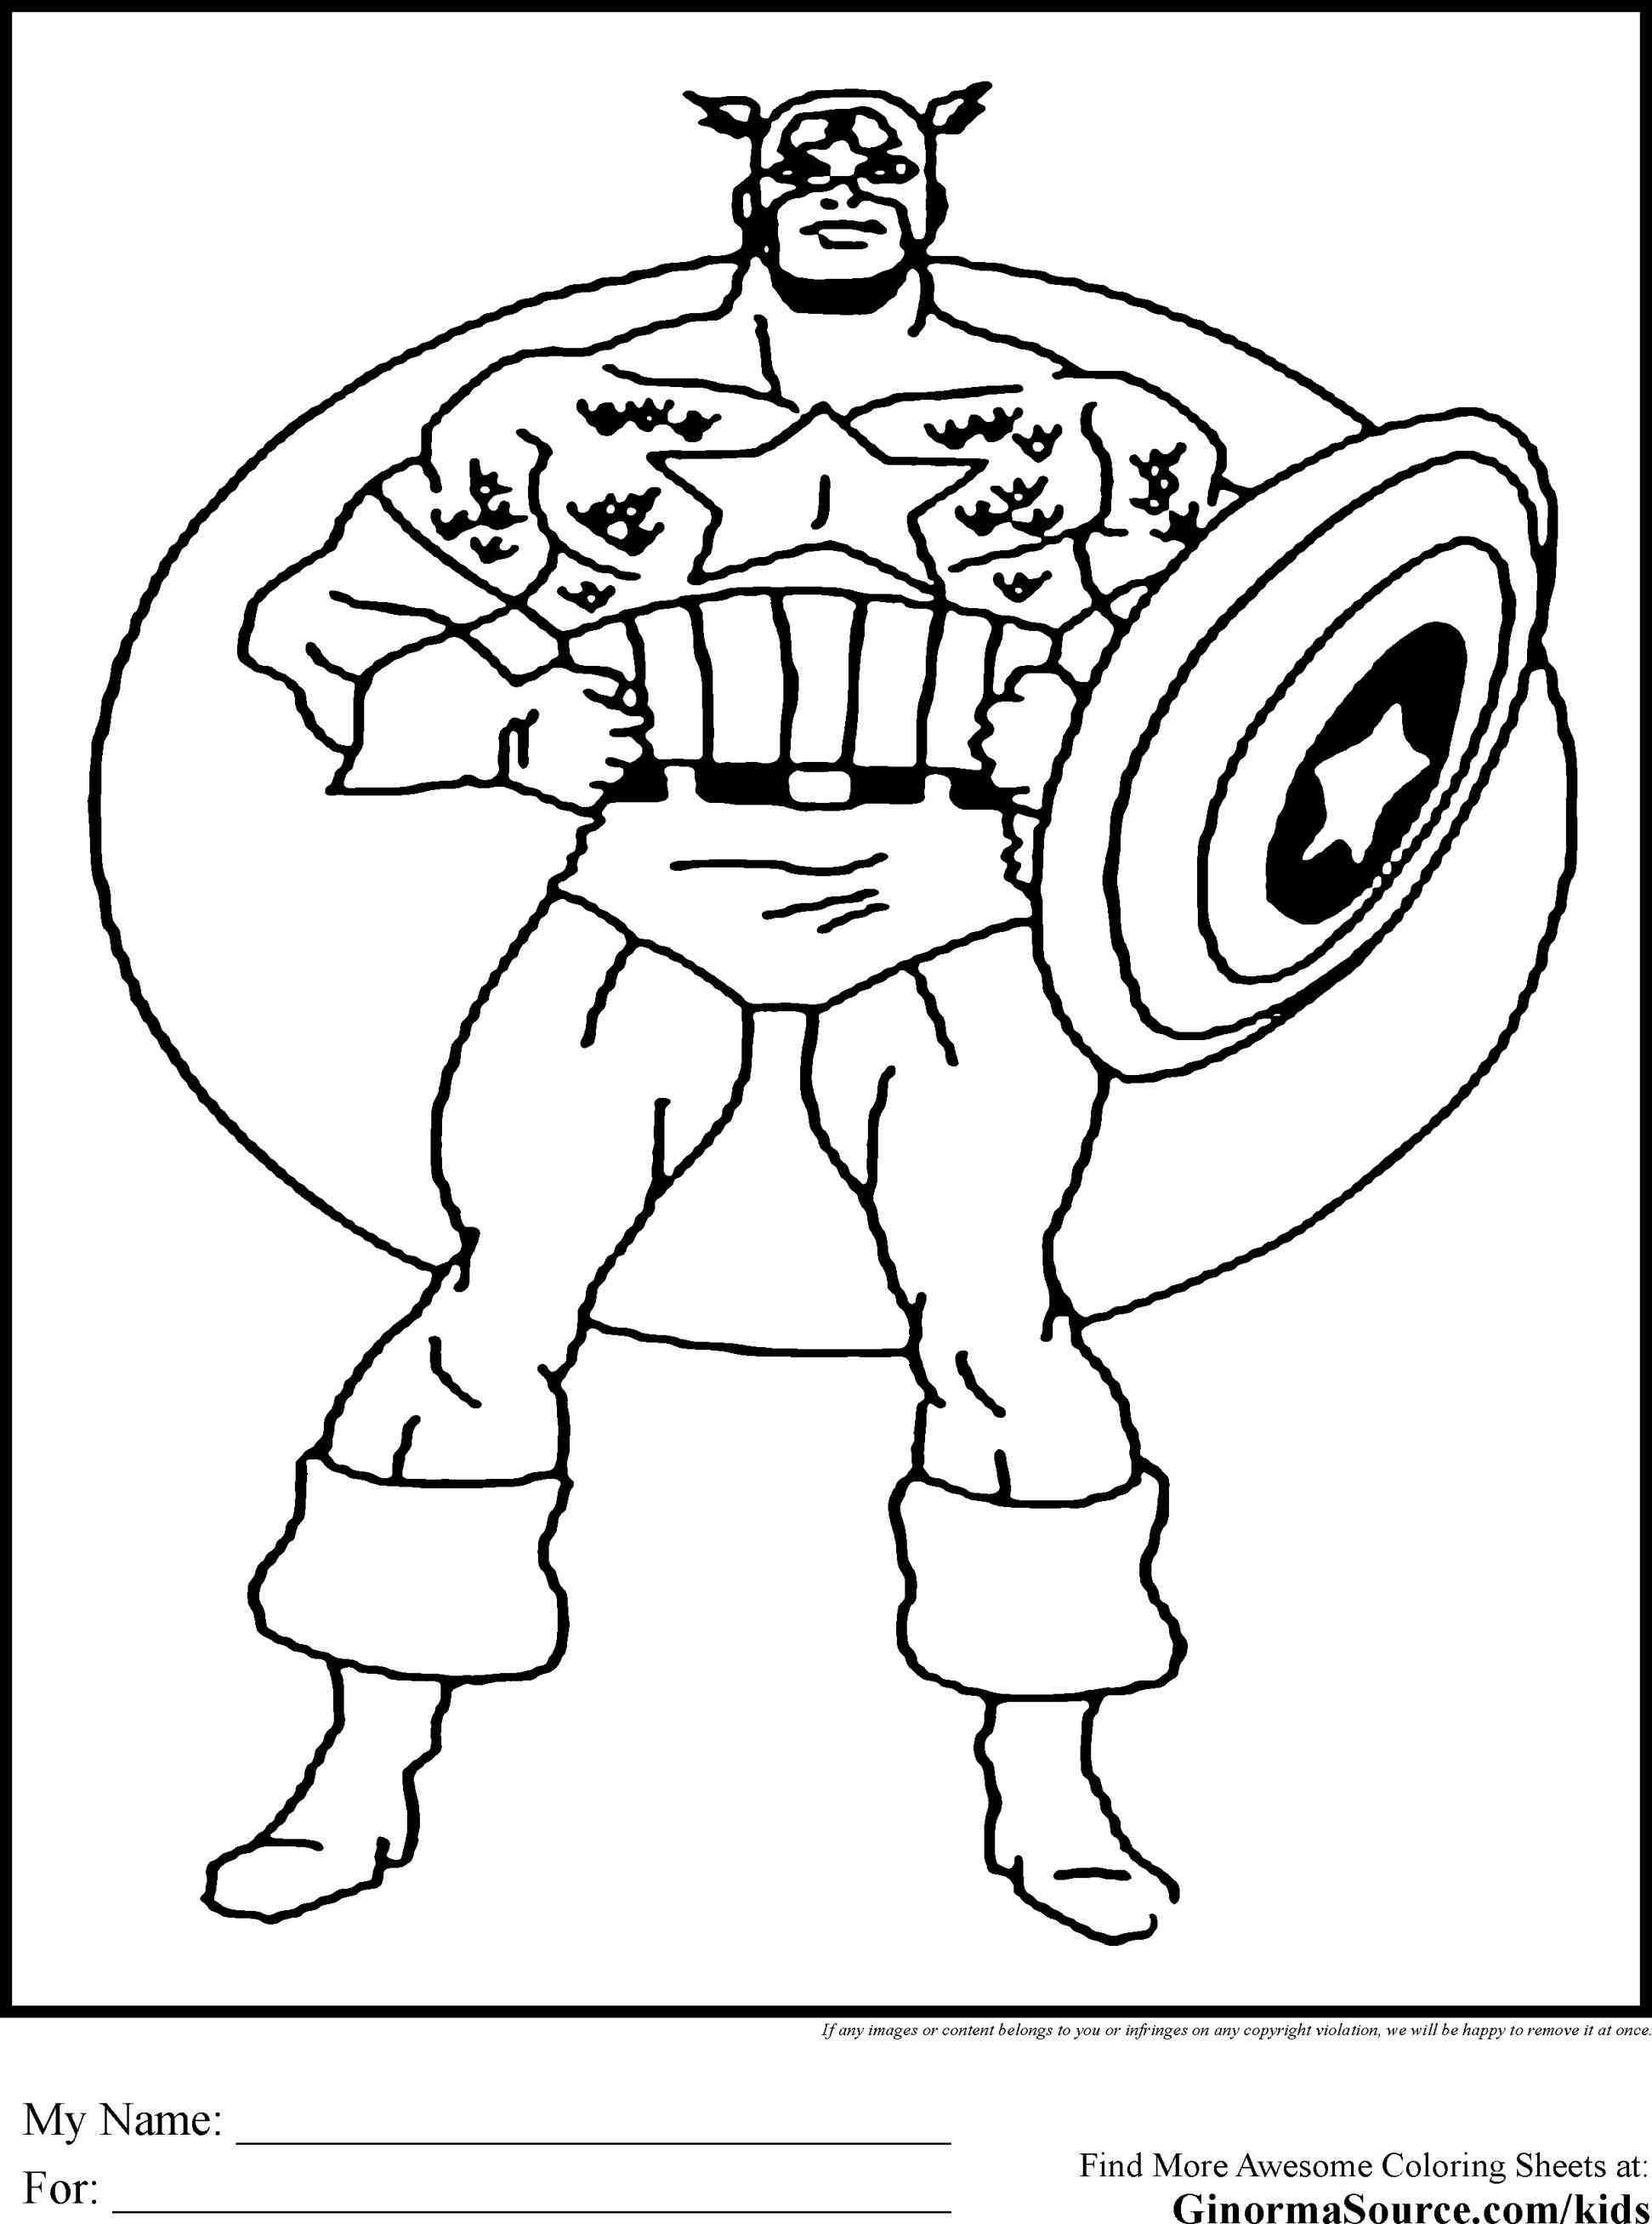 captain america mask coloring pages captain america face coloring pages coloring home pages mask america captain coloring